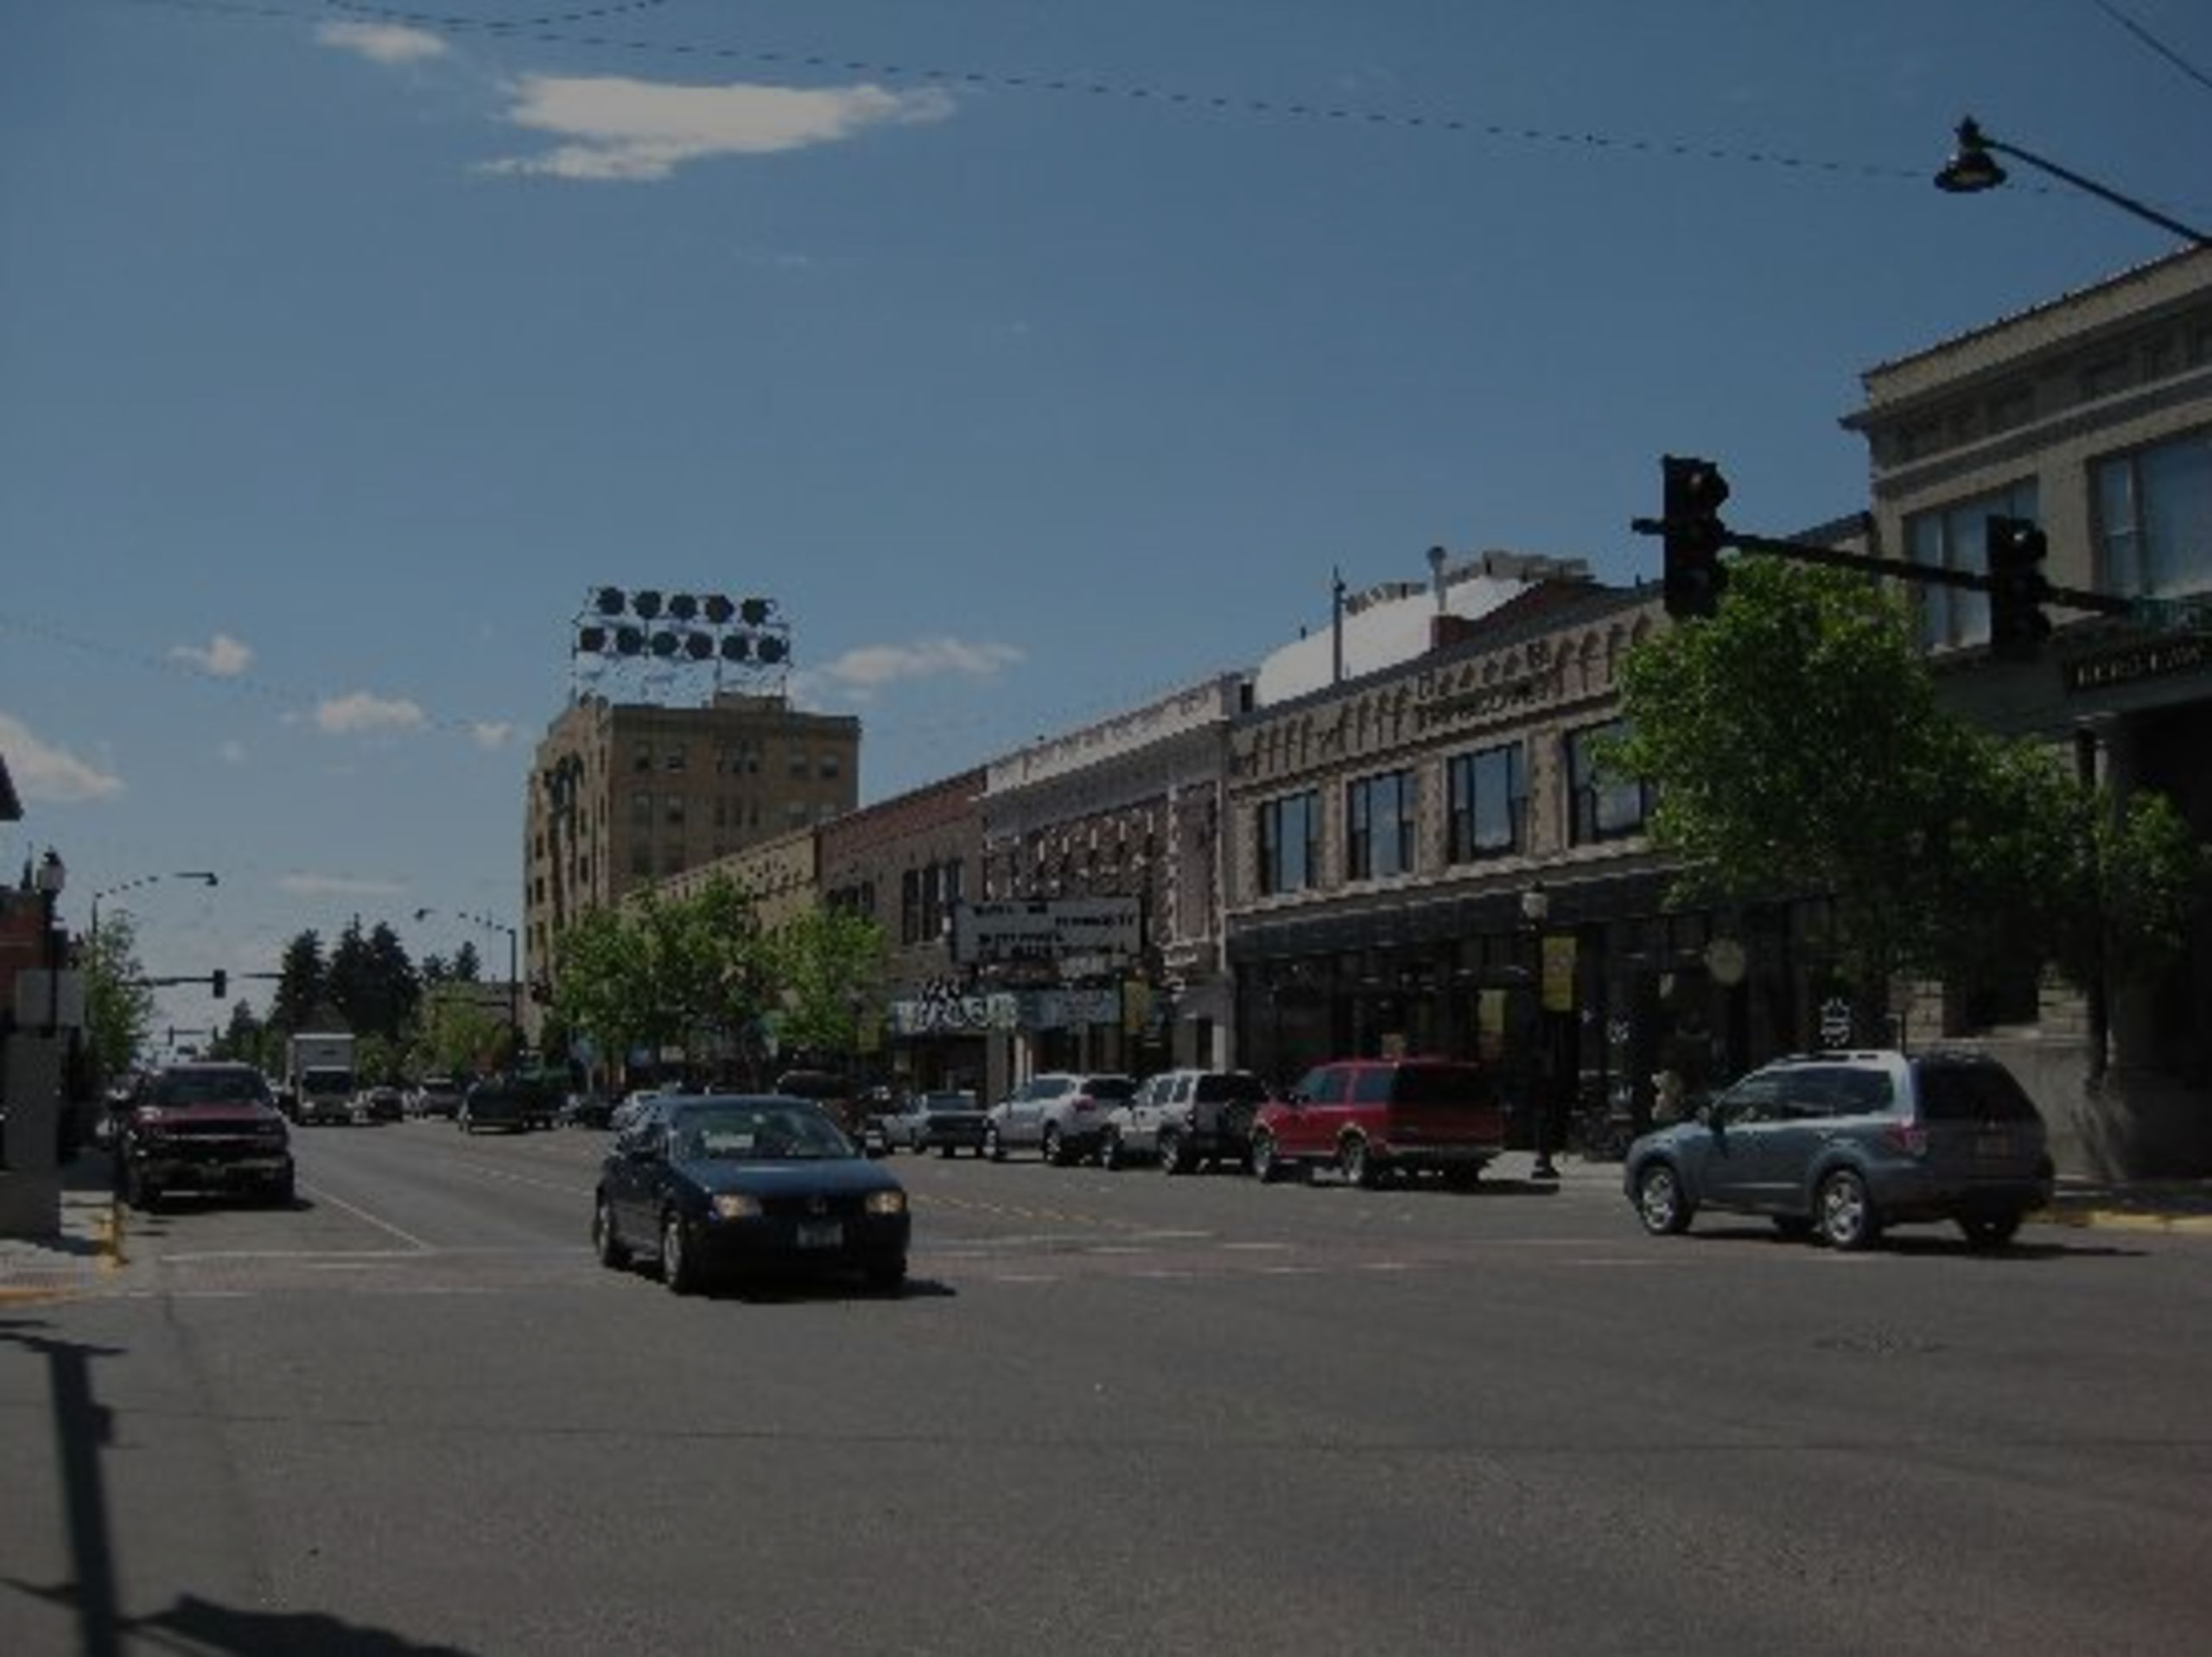 Bozeman boasts lowest crime rate in Montana